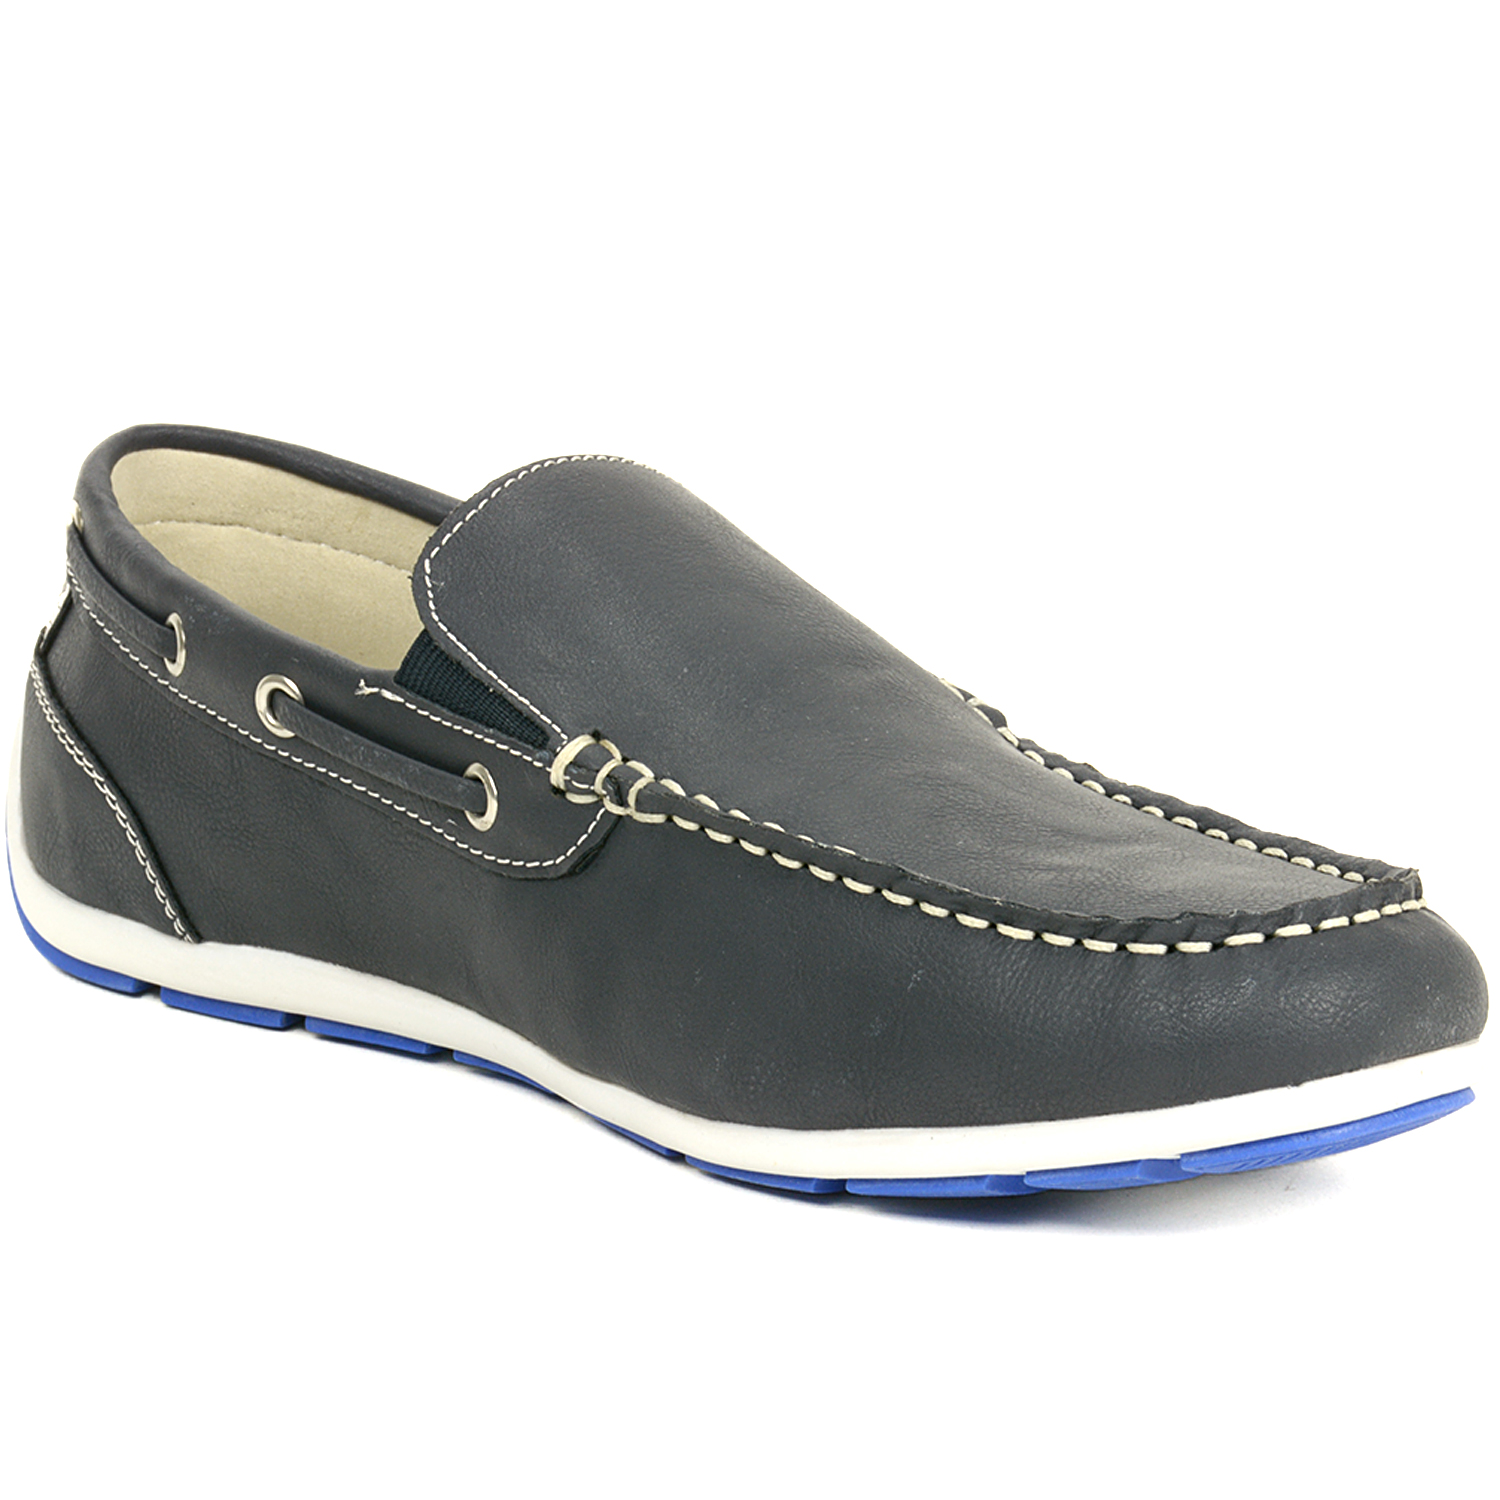 Gbx Shoes Slip On